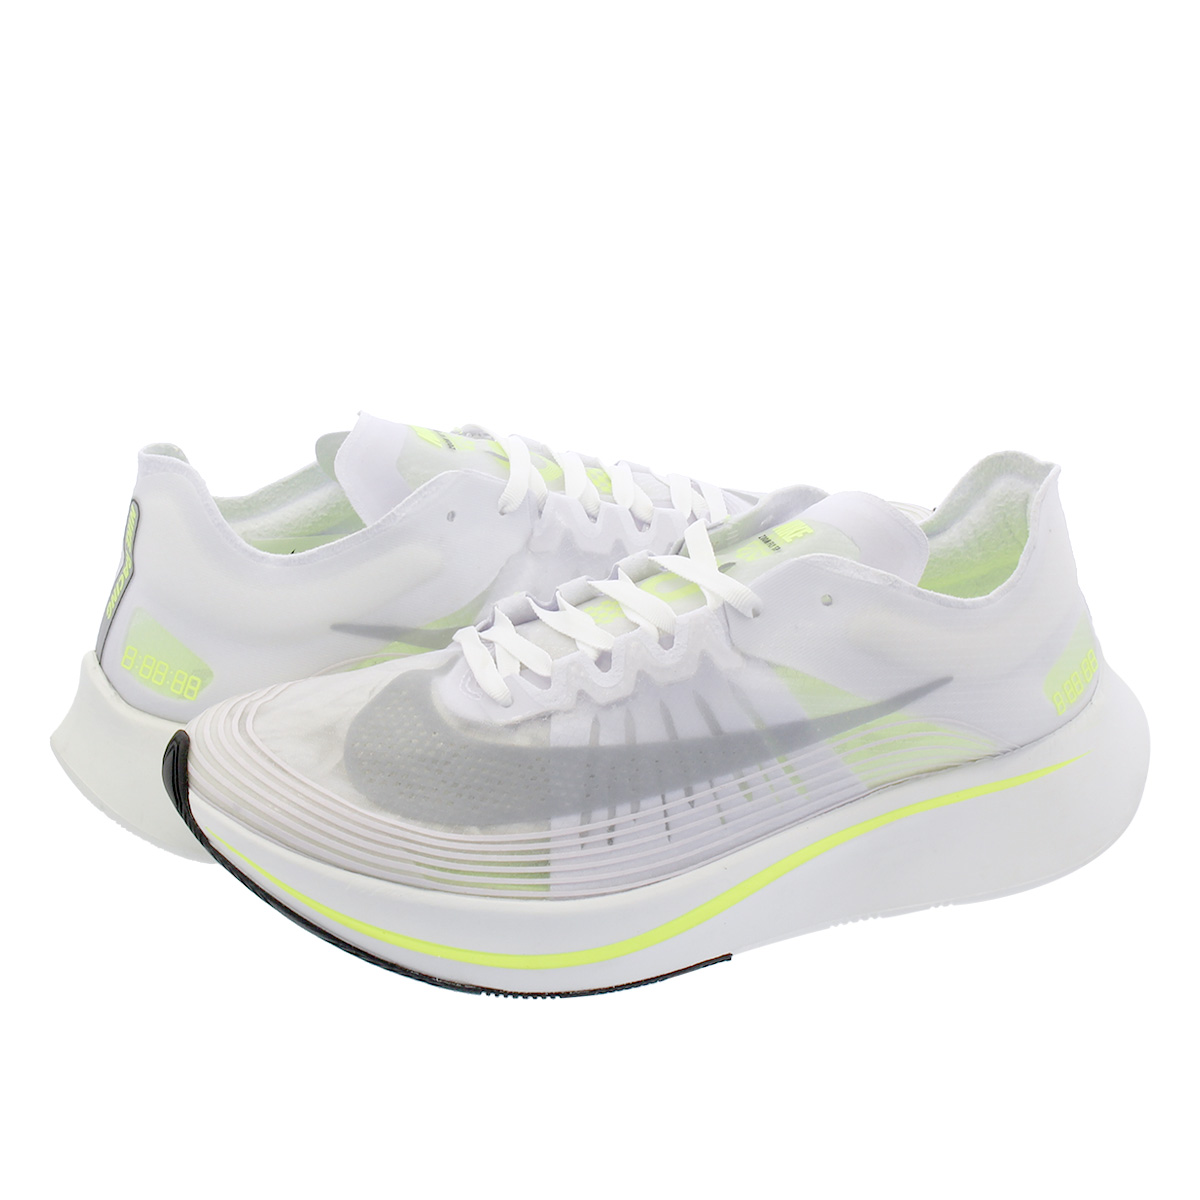 NIKE ZOOM FLY SP ナイキ ズーム フライ SP WHITE/VOLT GLOW/SUMMIT WHITE aj9282-107